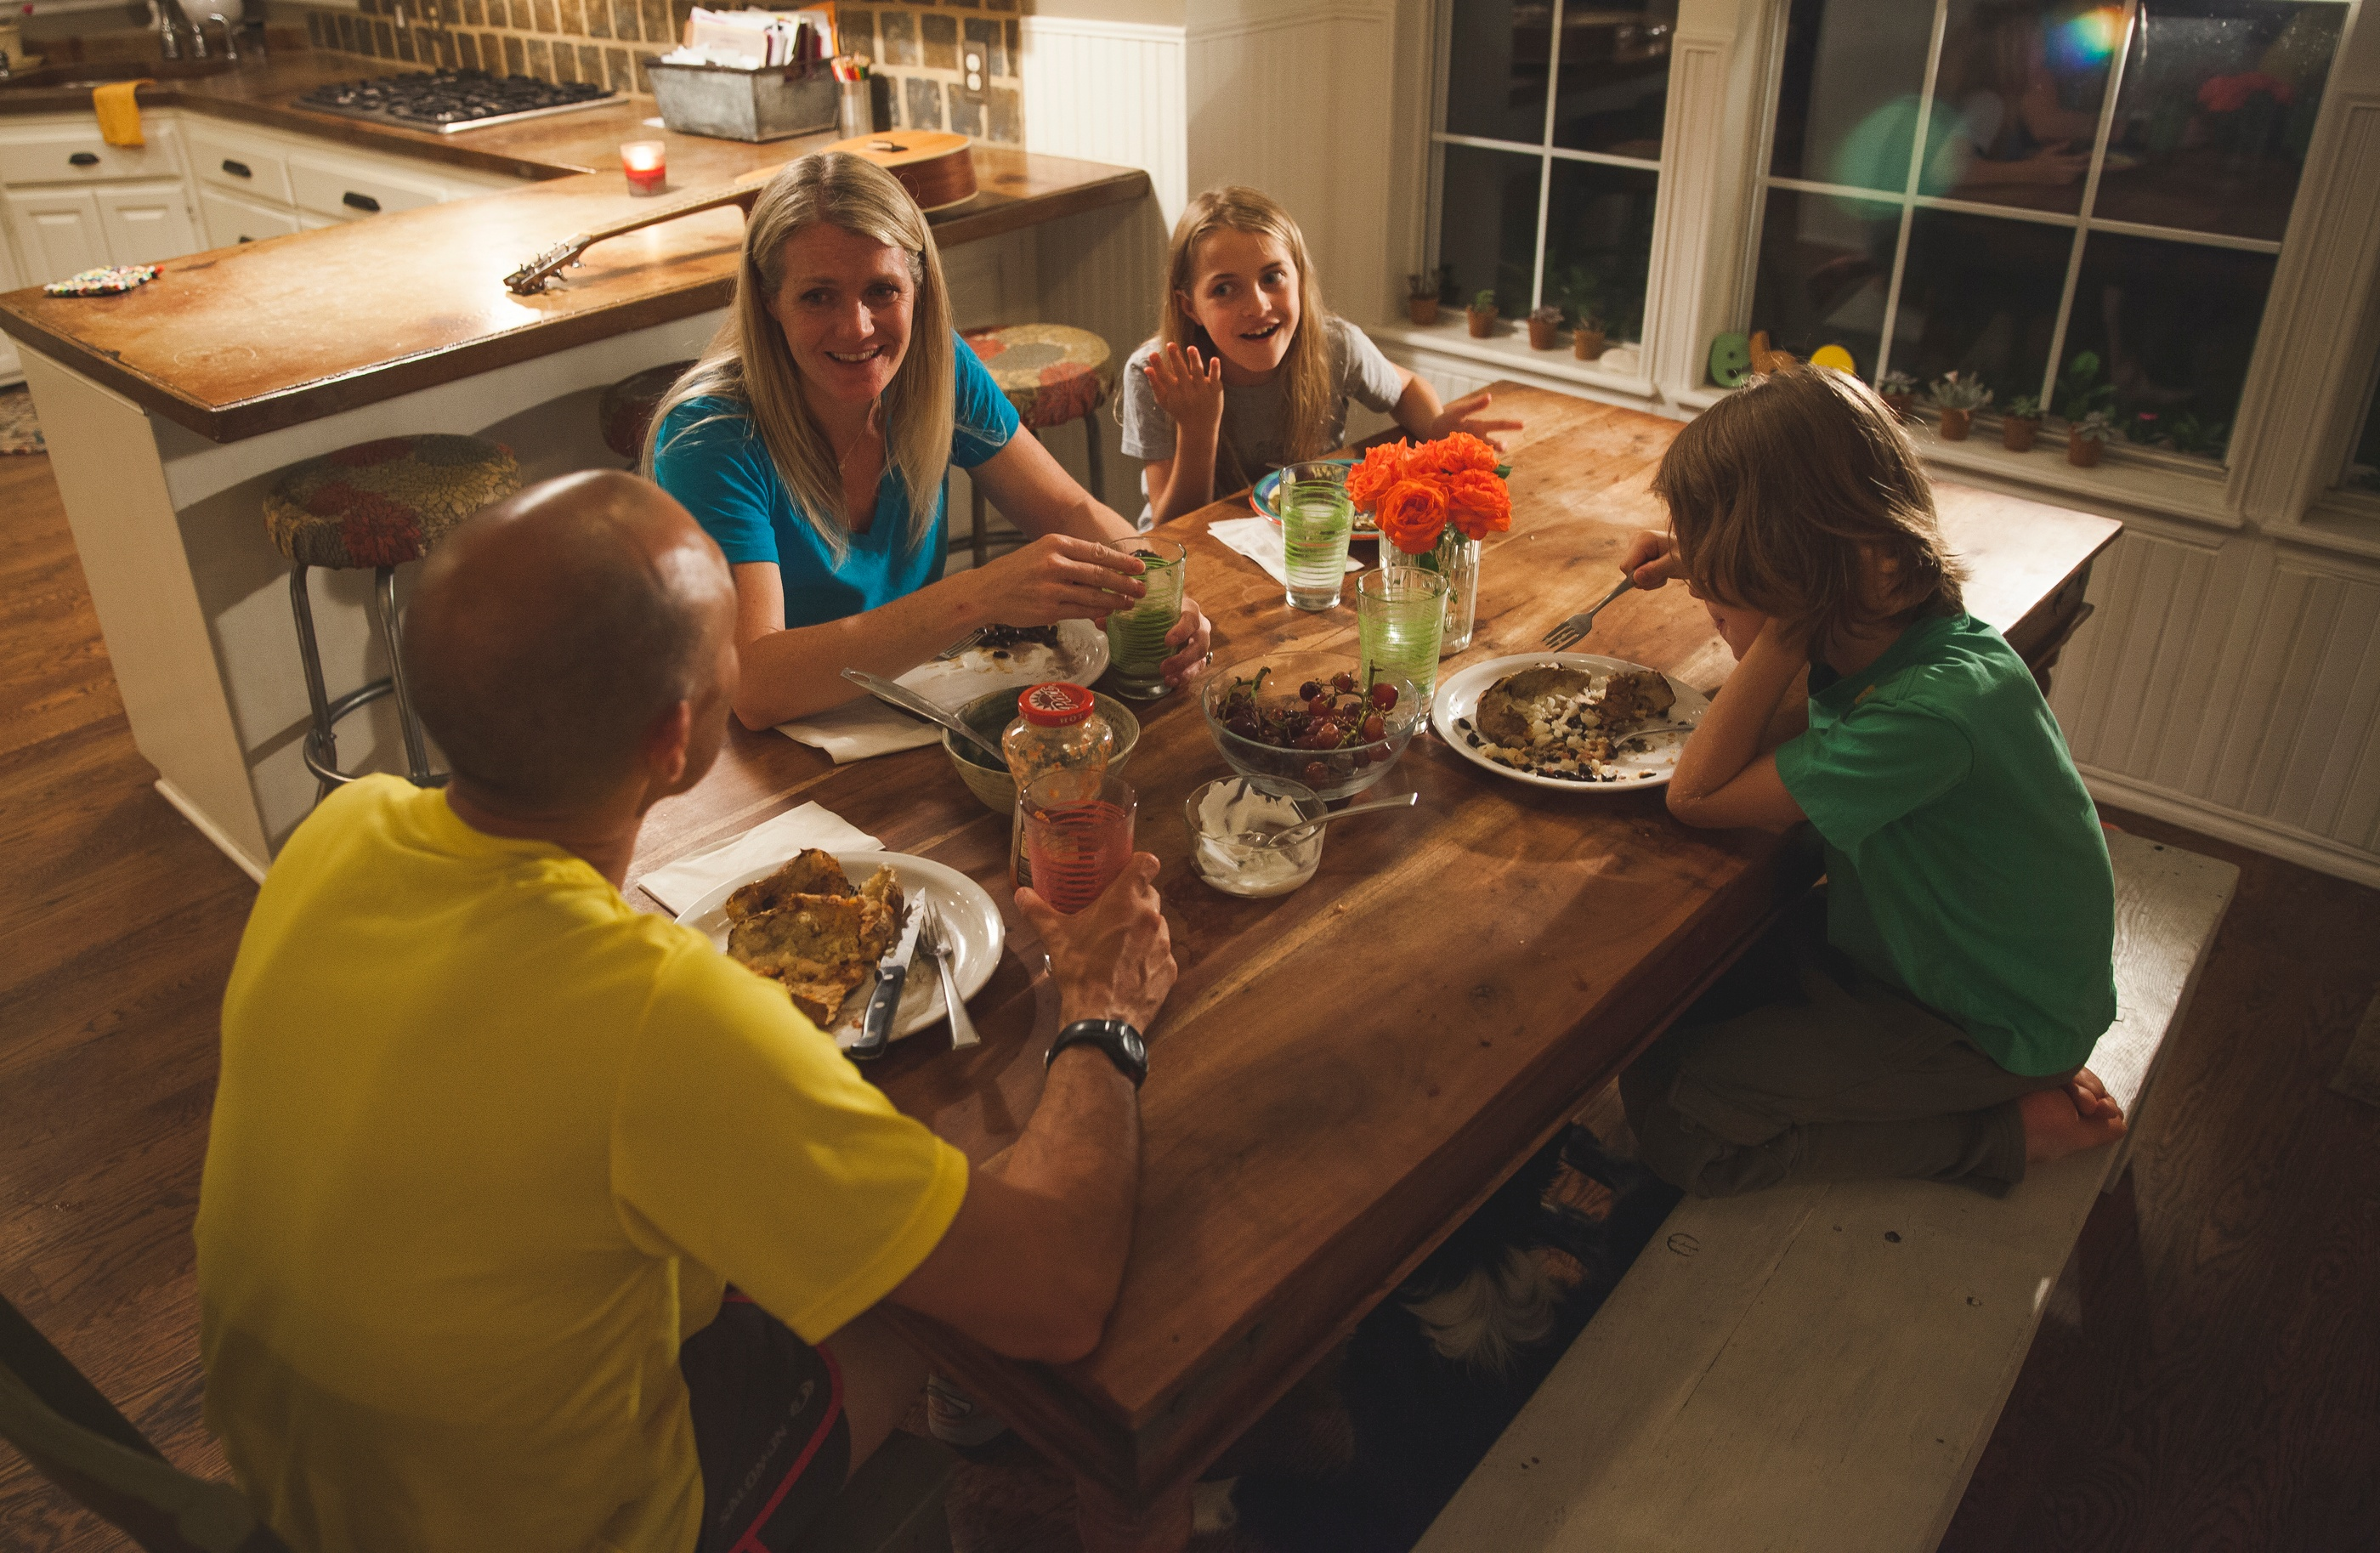 dinner at the table with family